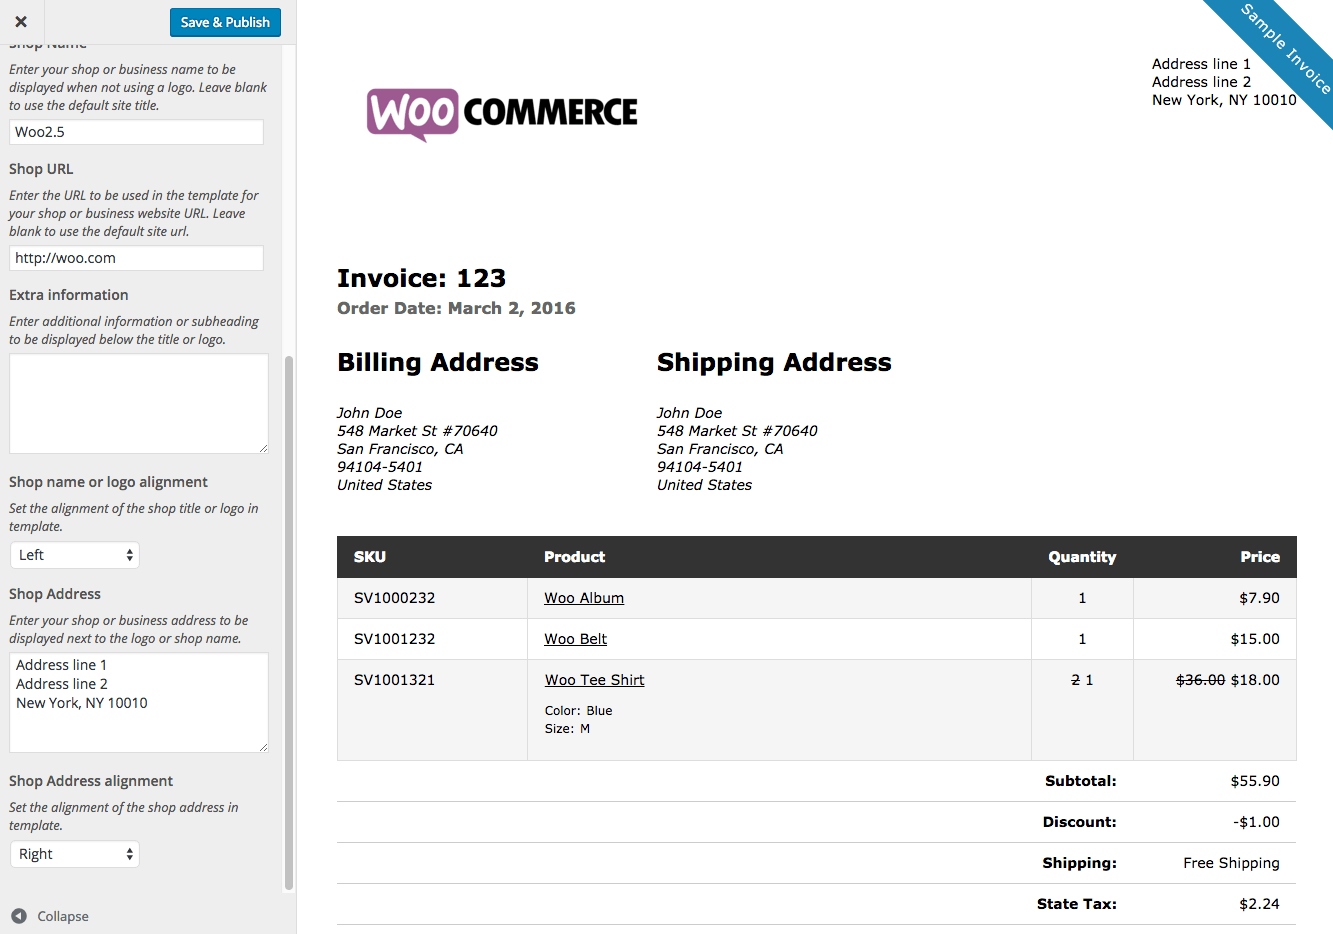 WooCommerce Print Invoices Packing Lists WooCommerce - Woocommerce invoice system